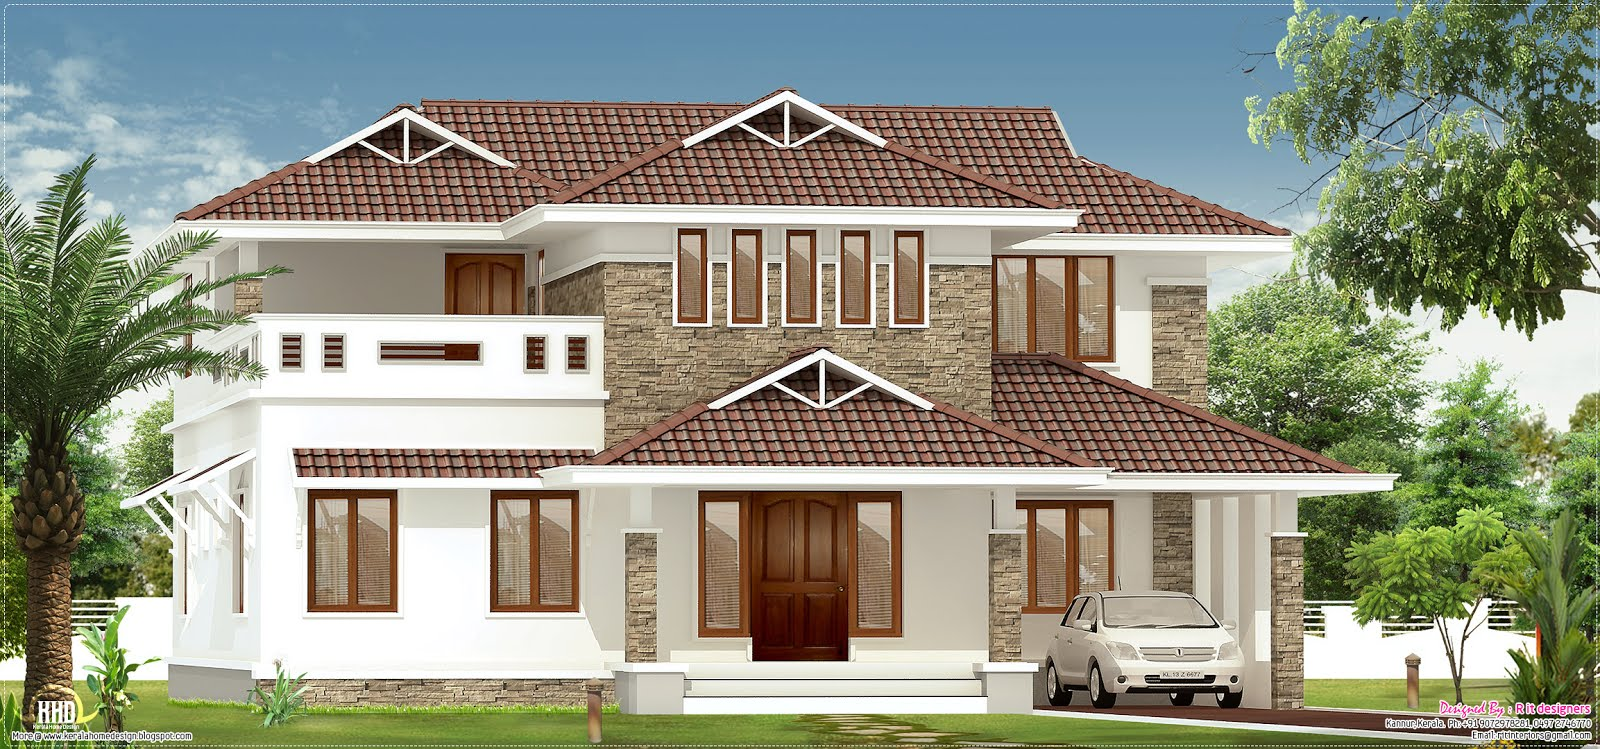 New Home Design 2700 Villa Elevation Design